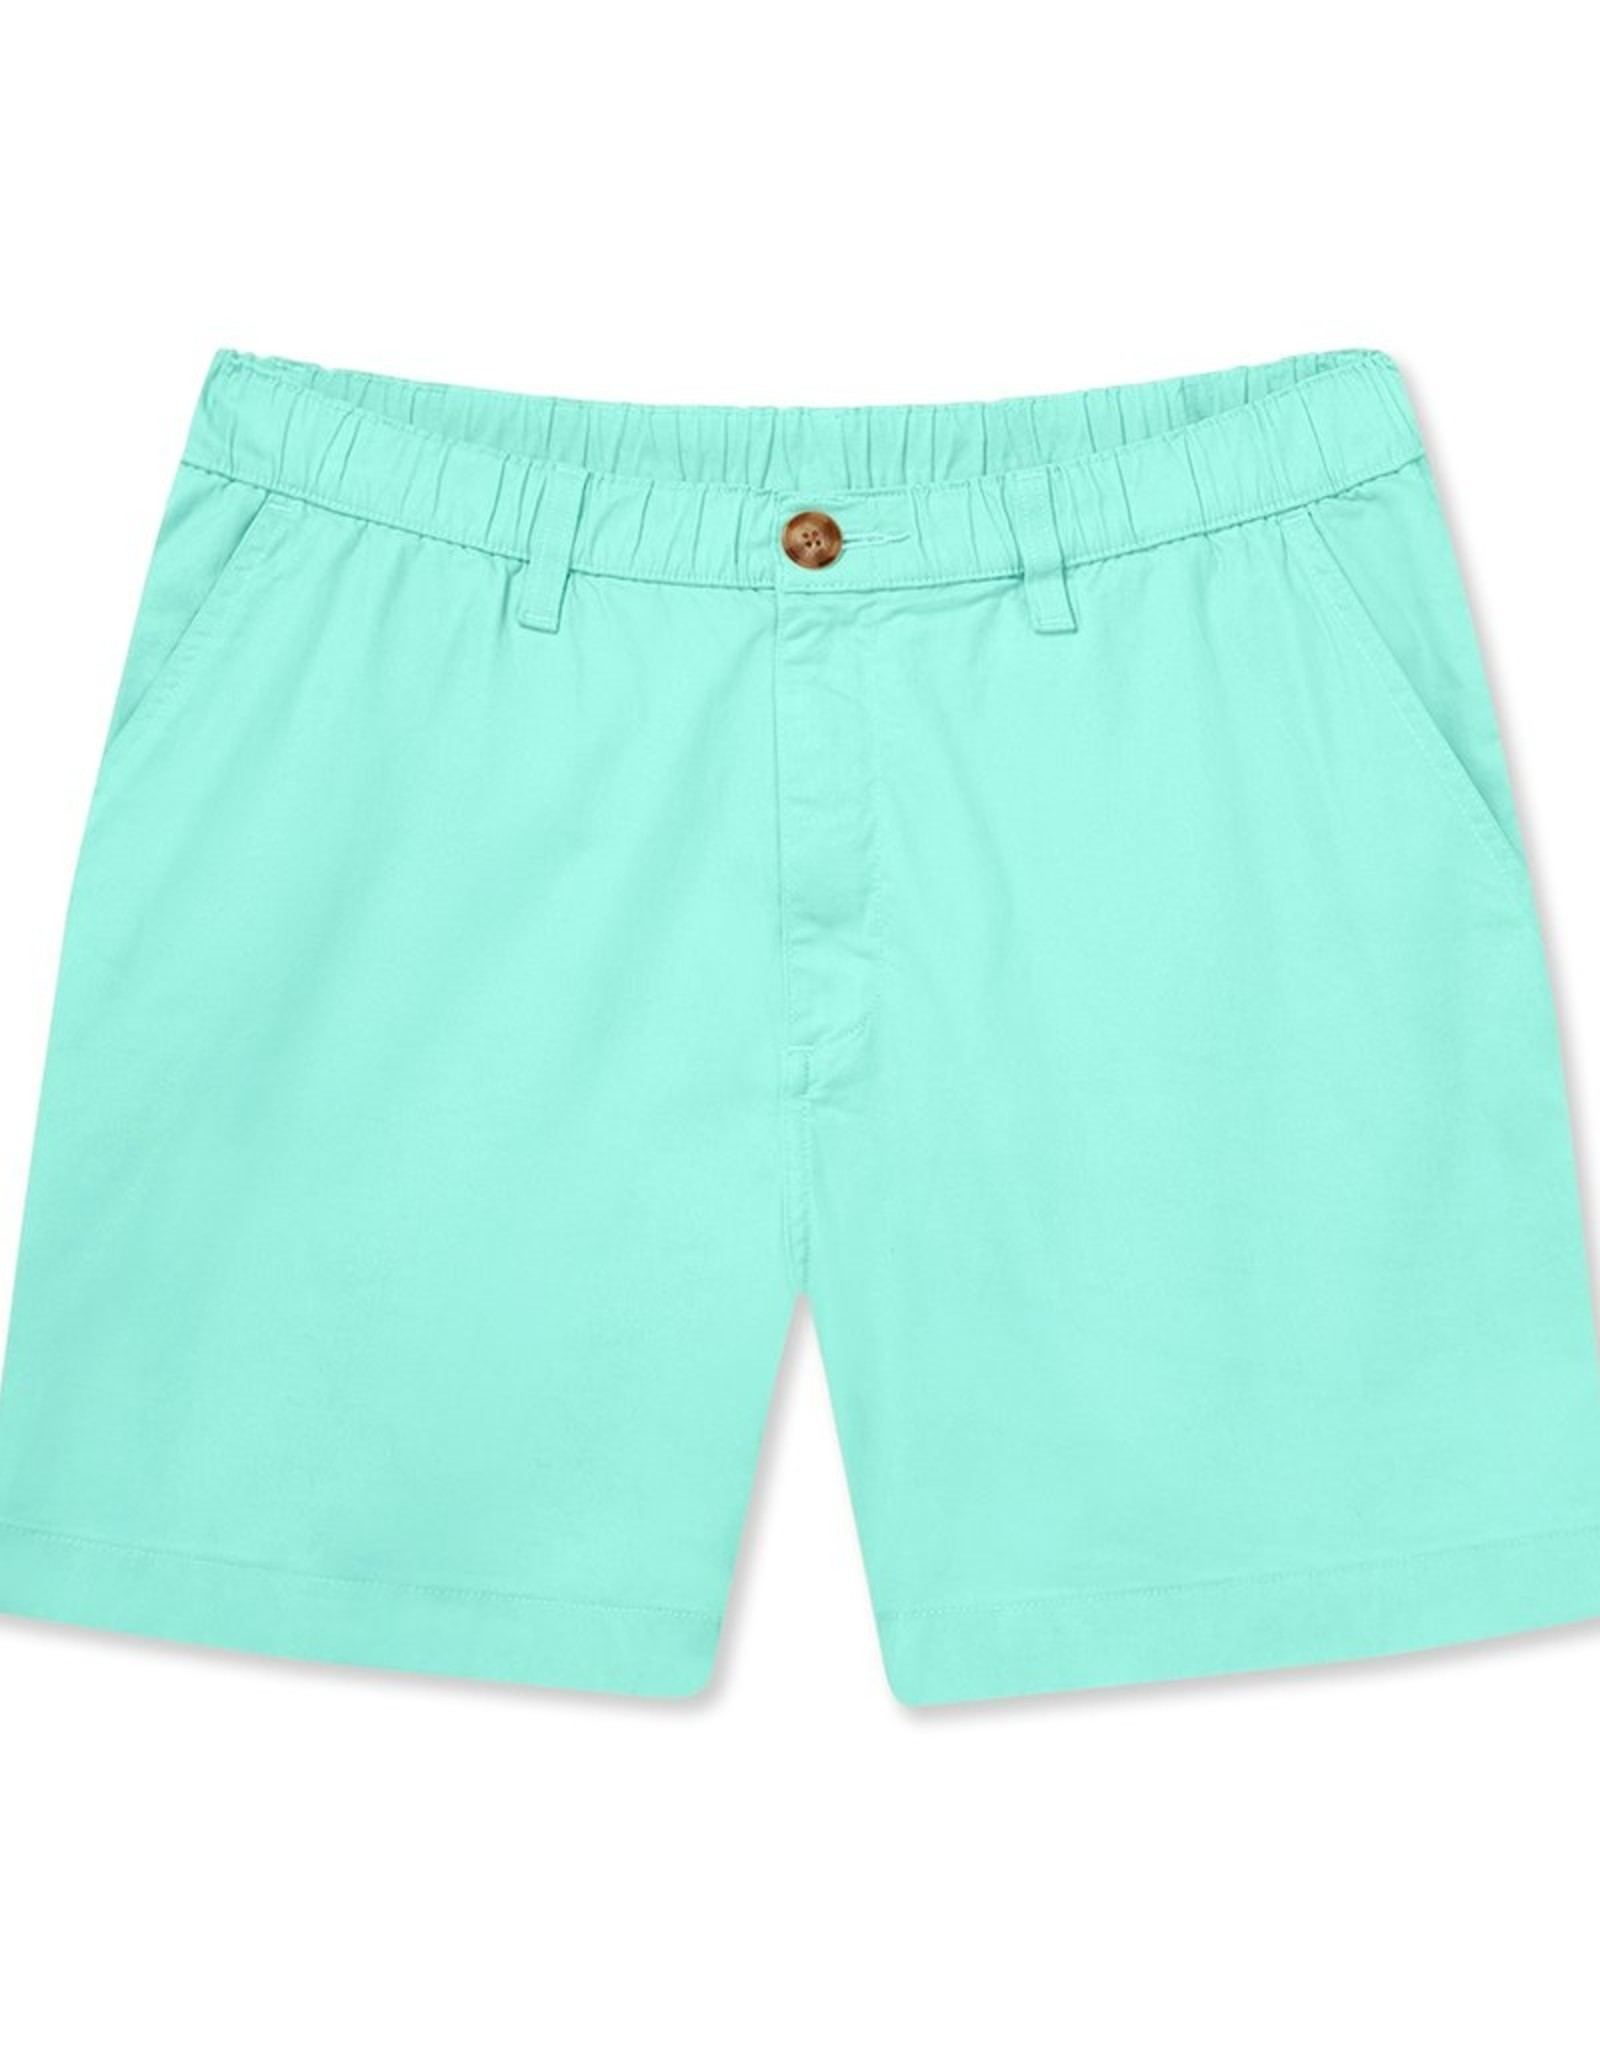 Chubbies The Emerald Bays 5.5""